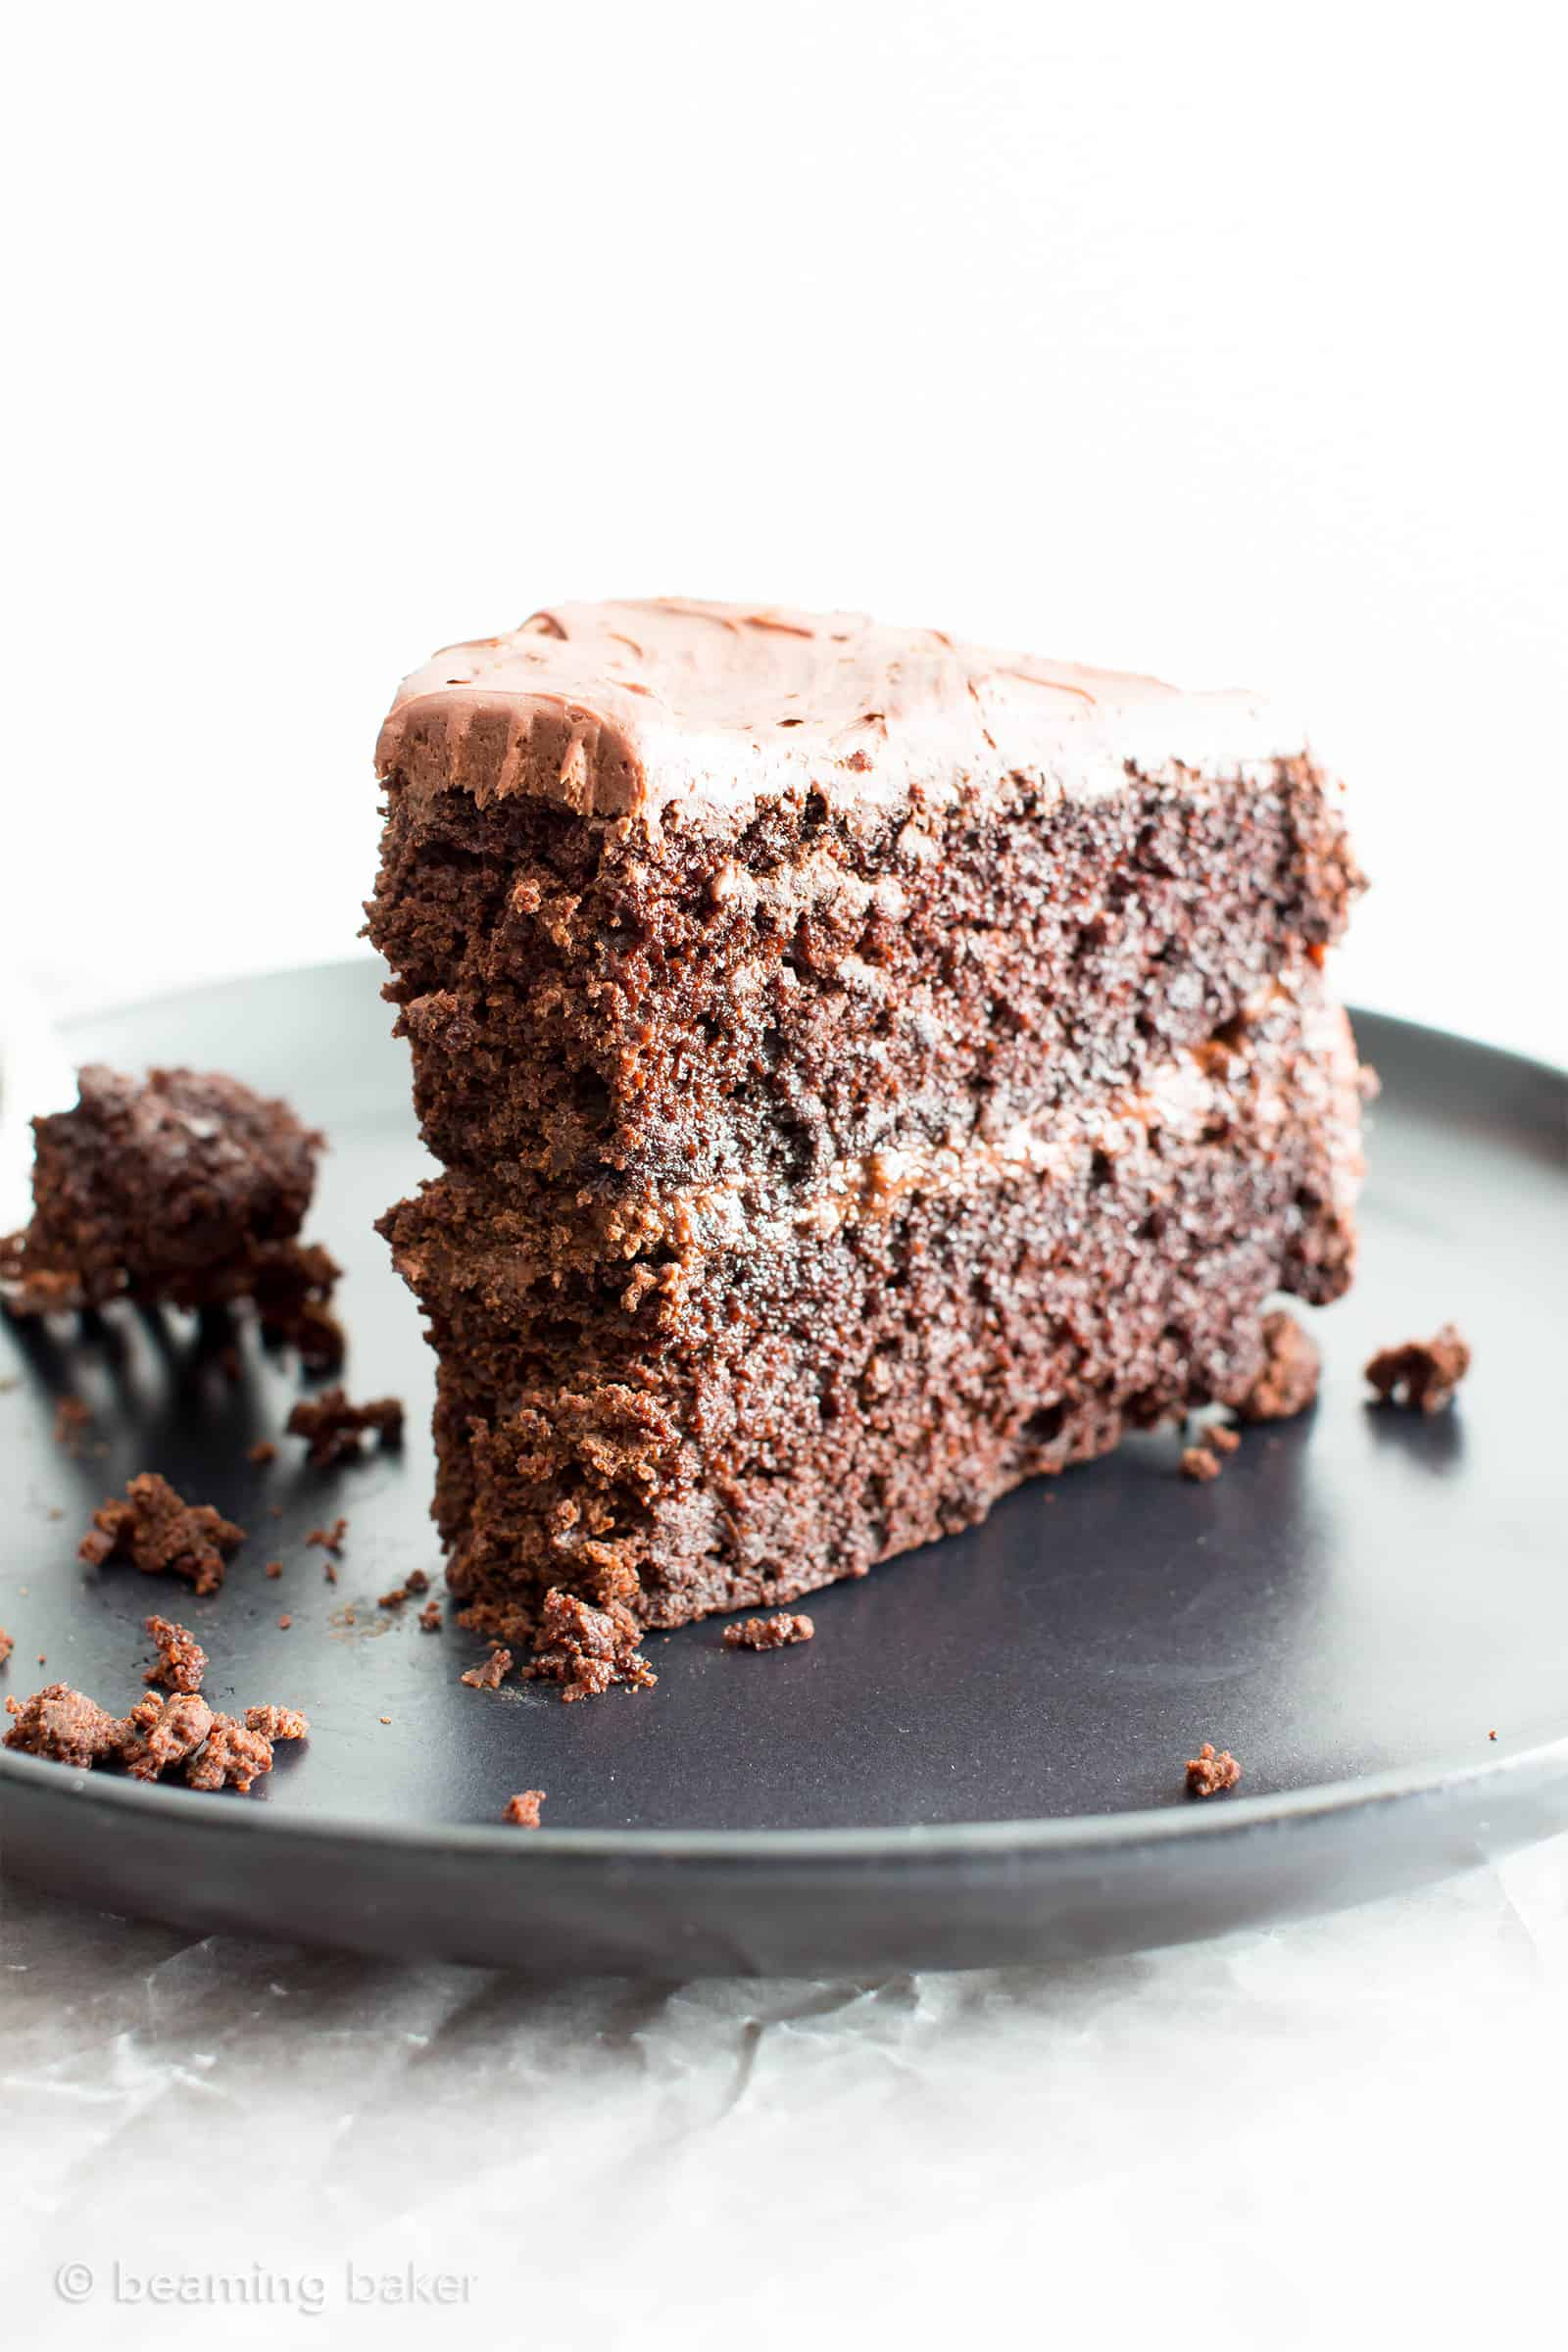 Vegan Chocolate Cake Recipe Gluten Free DairyFree V Refined